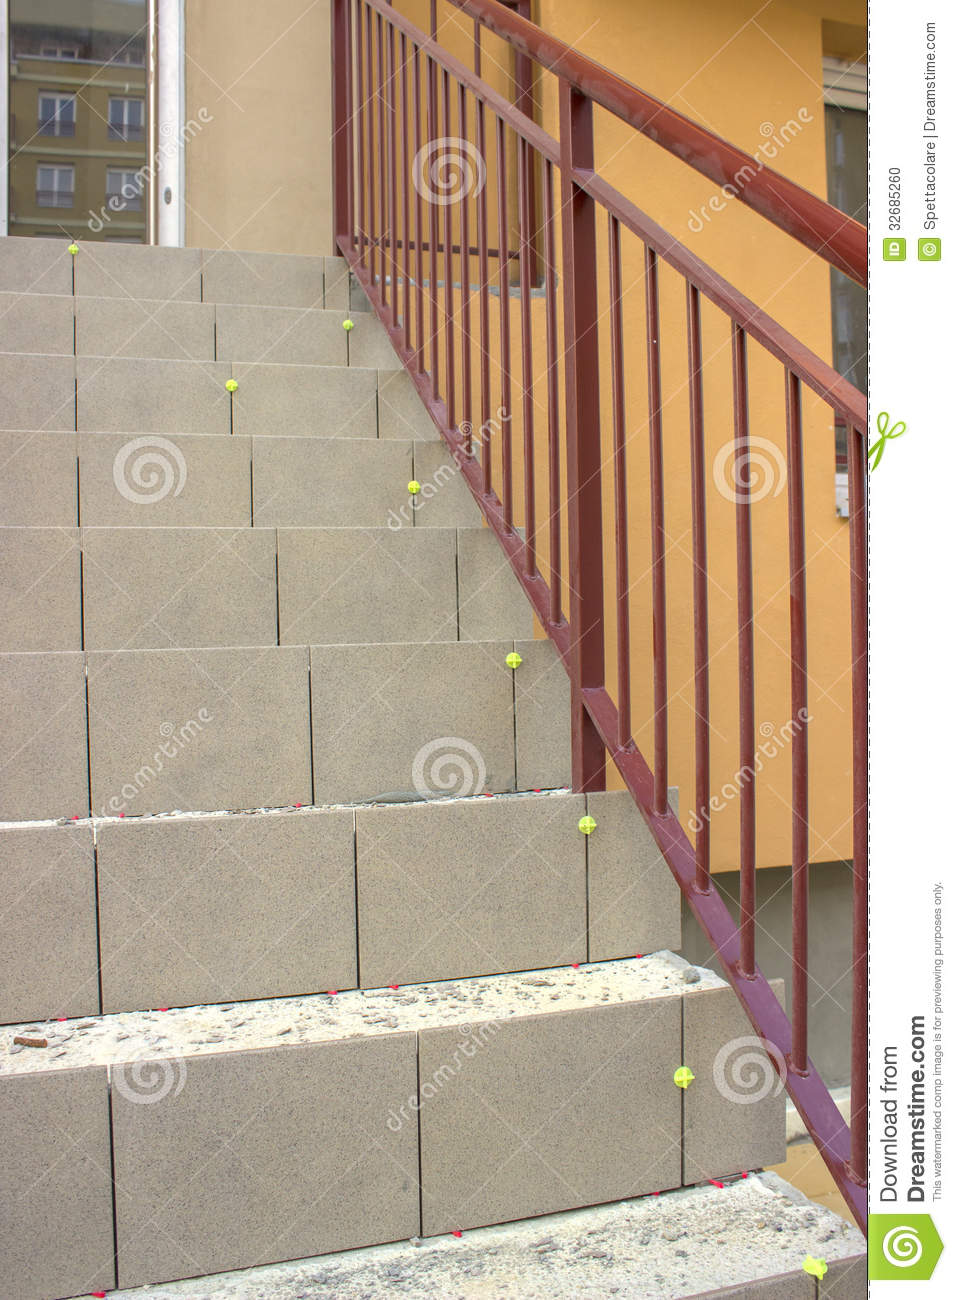 Laying ceramic tile on concrete stairs stock photo image of hard laying ceramic tile on concrete stairs dailygadgetfo Image collections